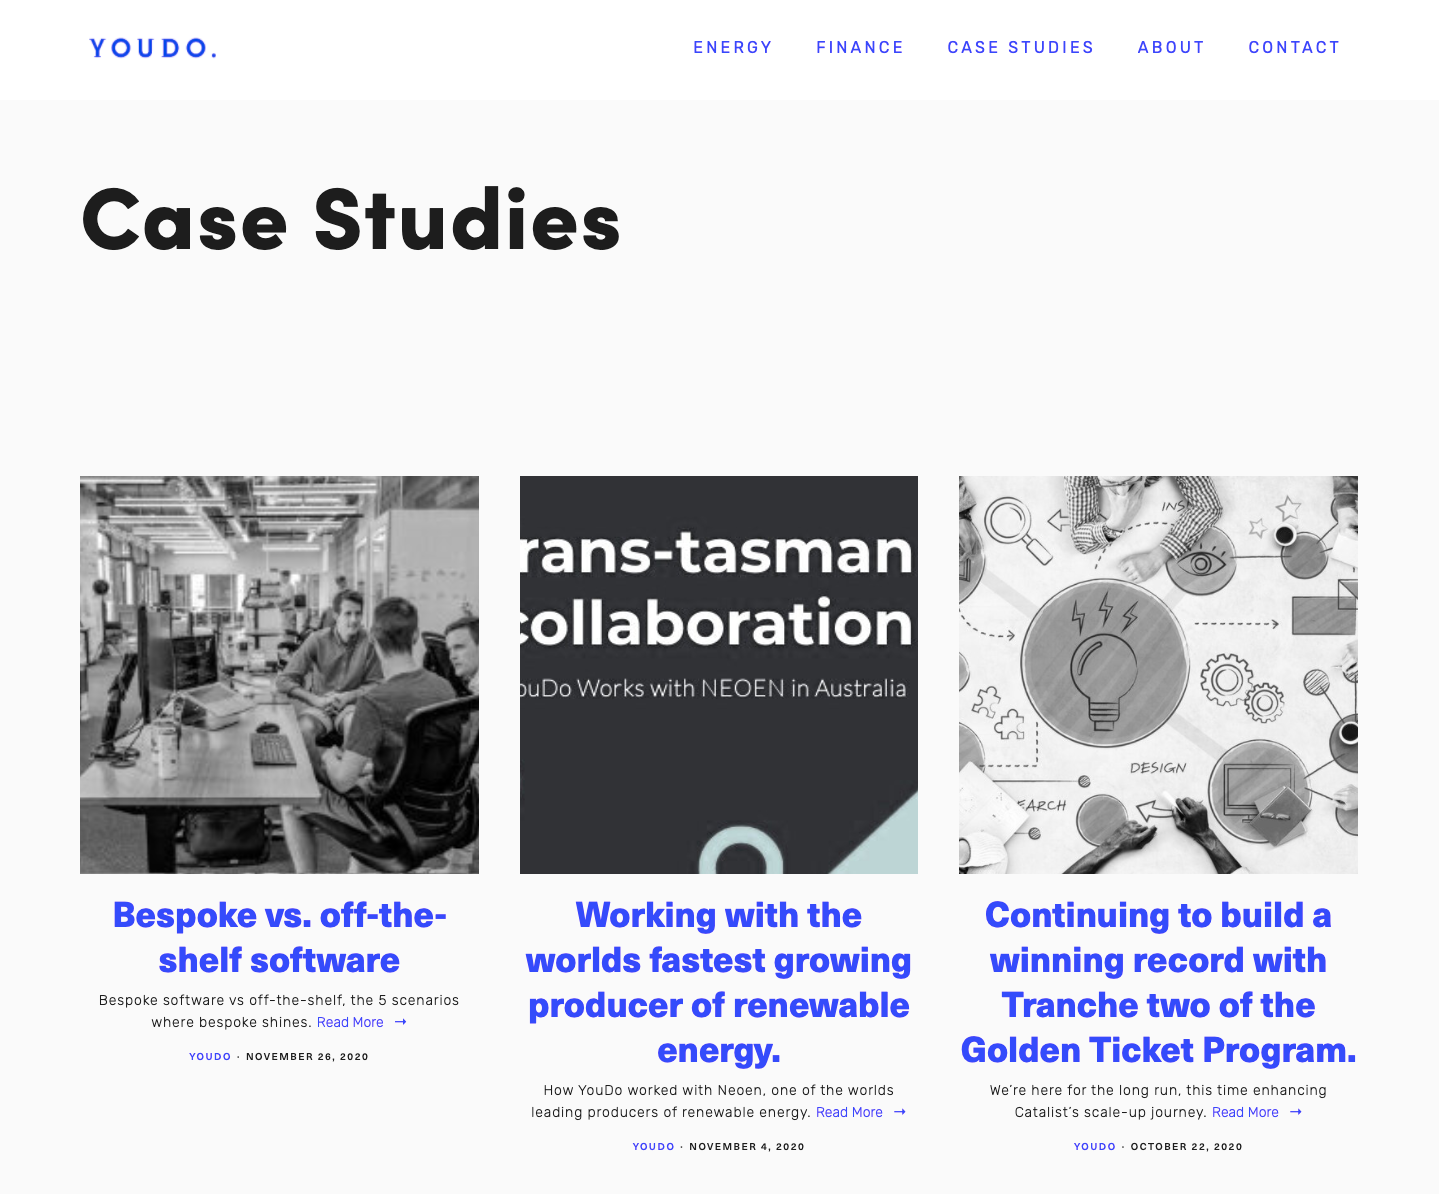 youdo case studies